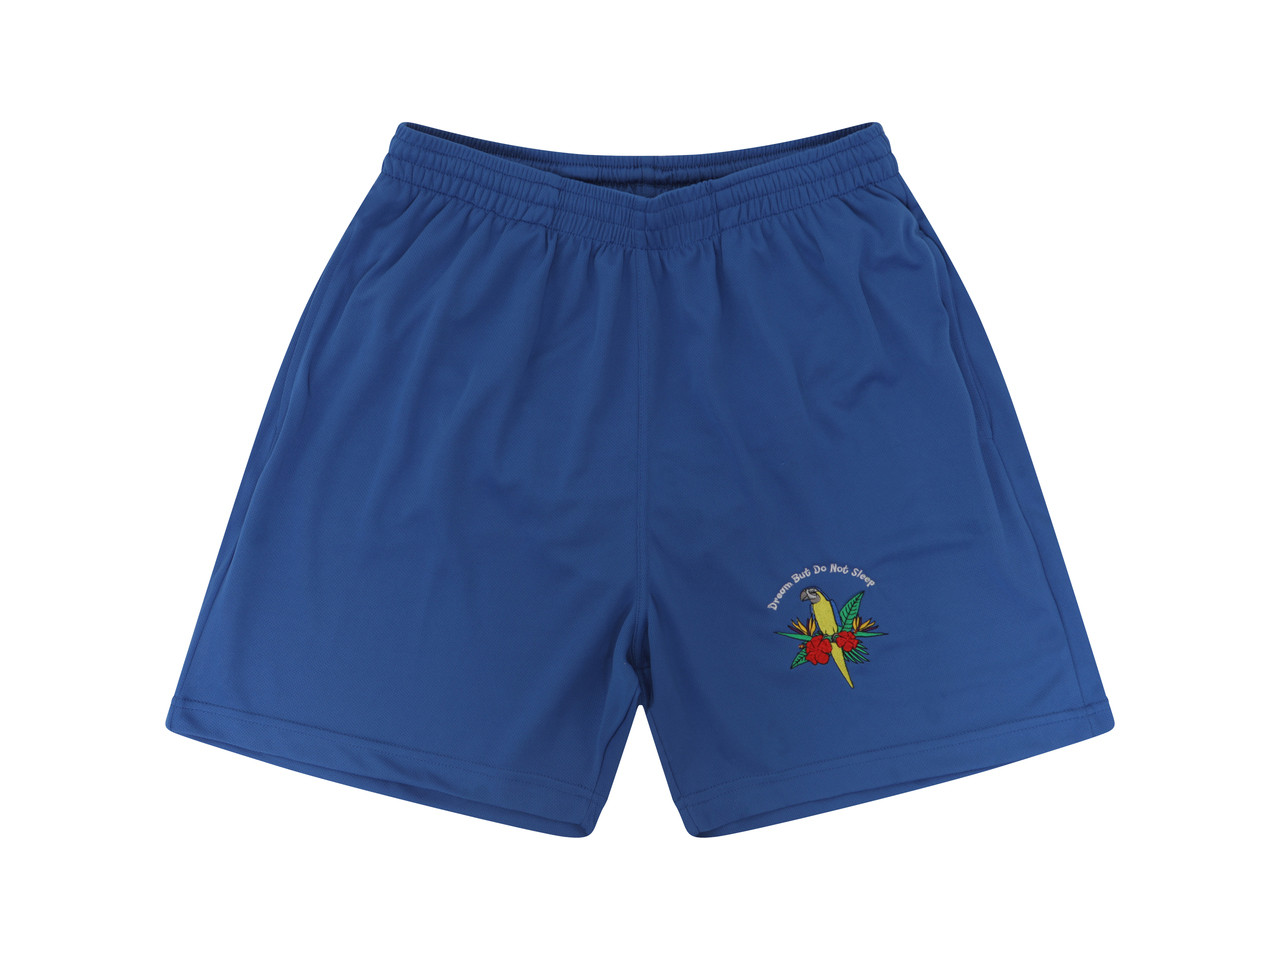 Royal Blue Shorts With Paradise Island Parrot Embroidery